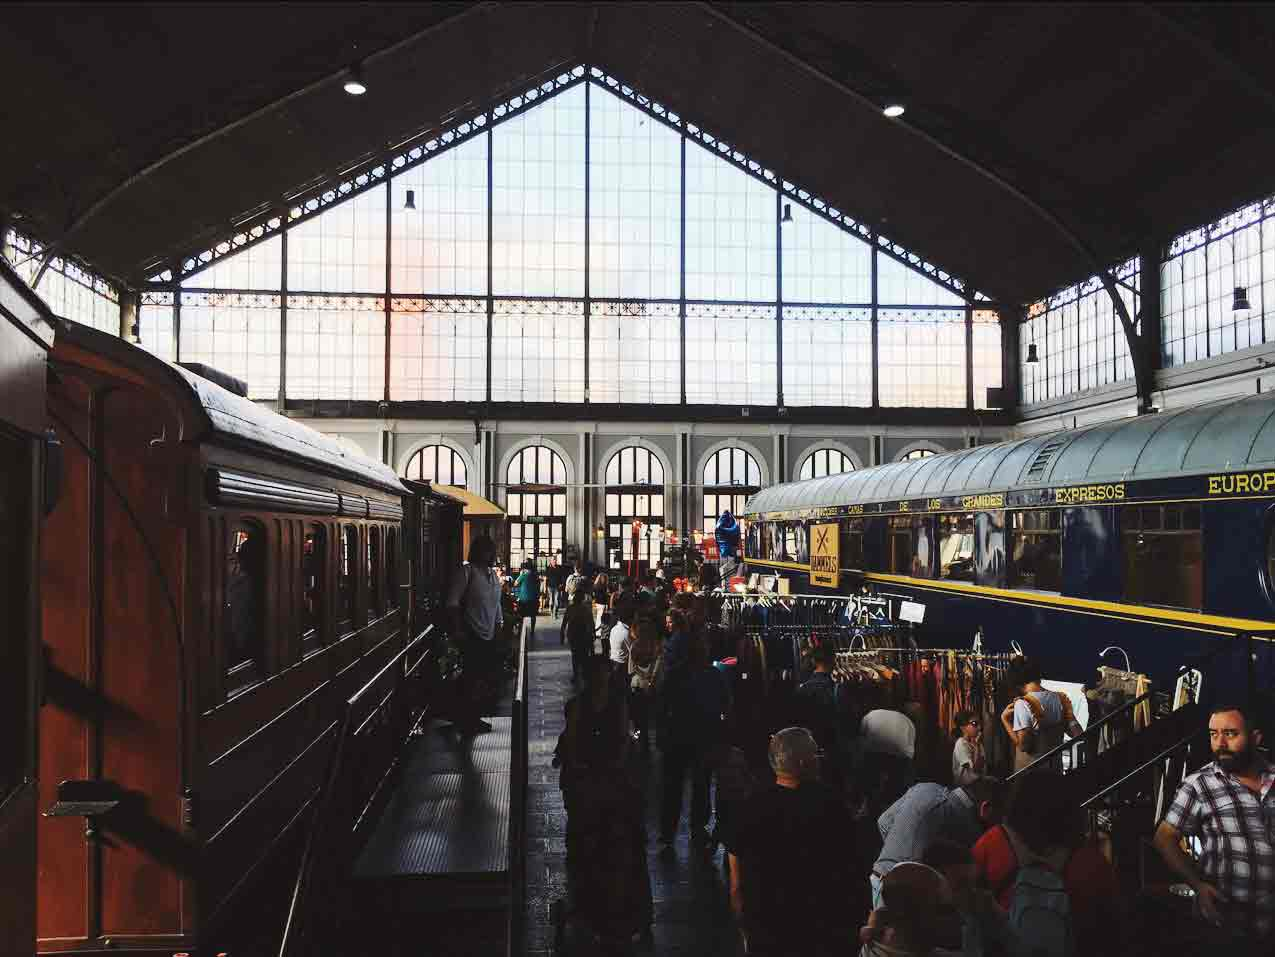 The location is an antique train station, and it's so magnificent and beautiful!